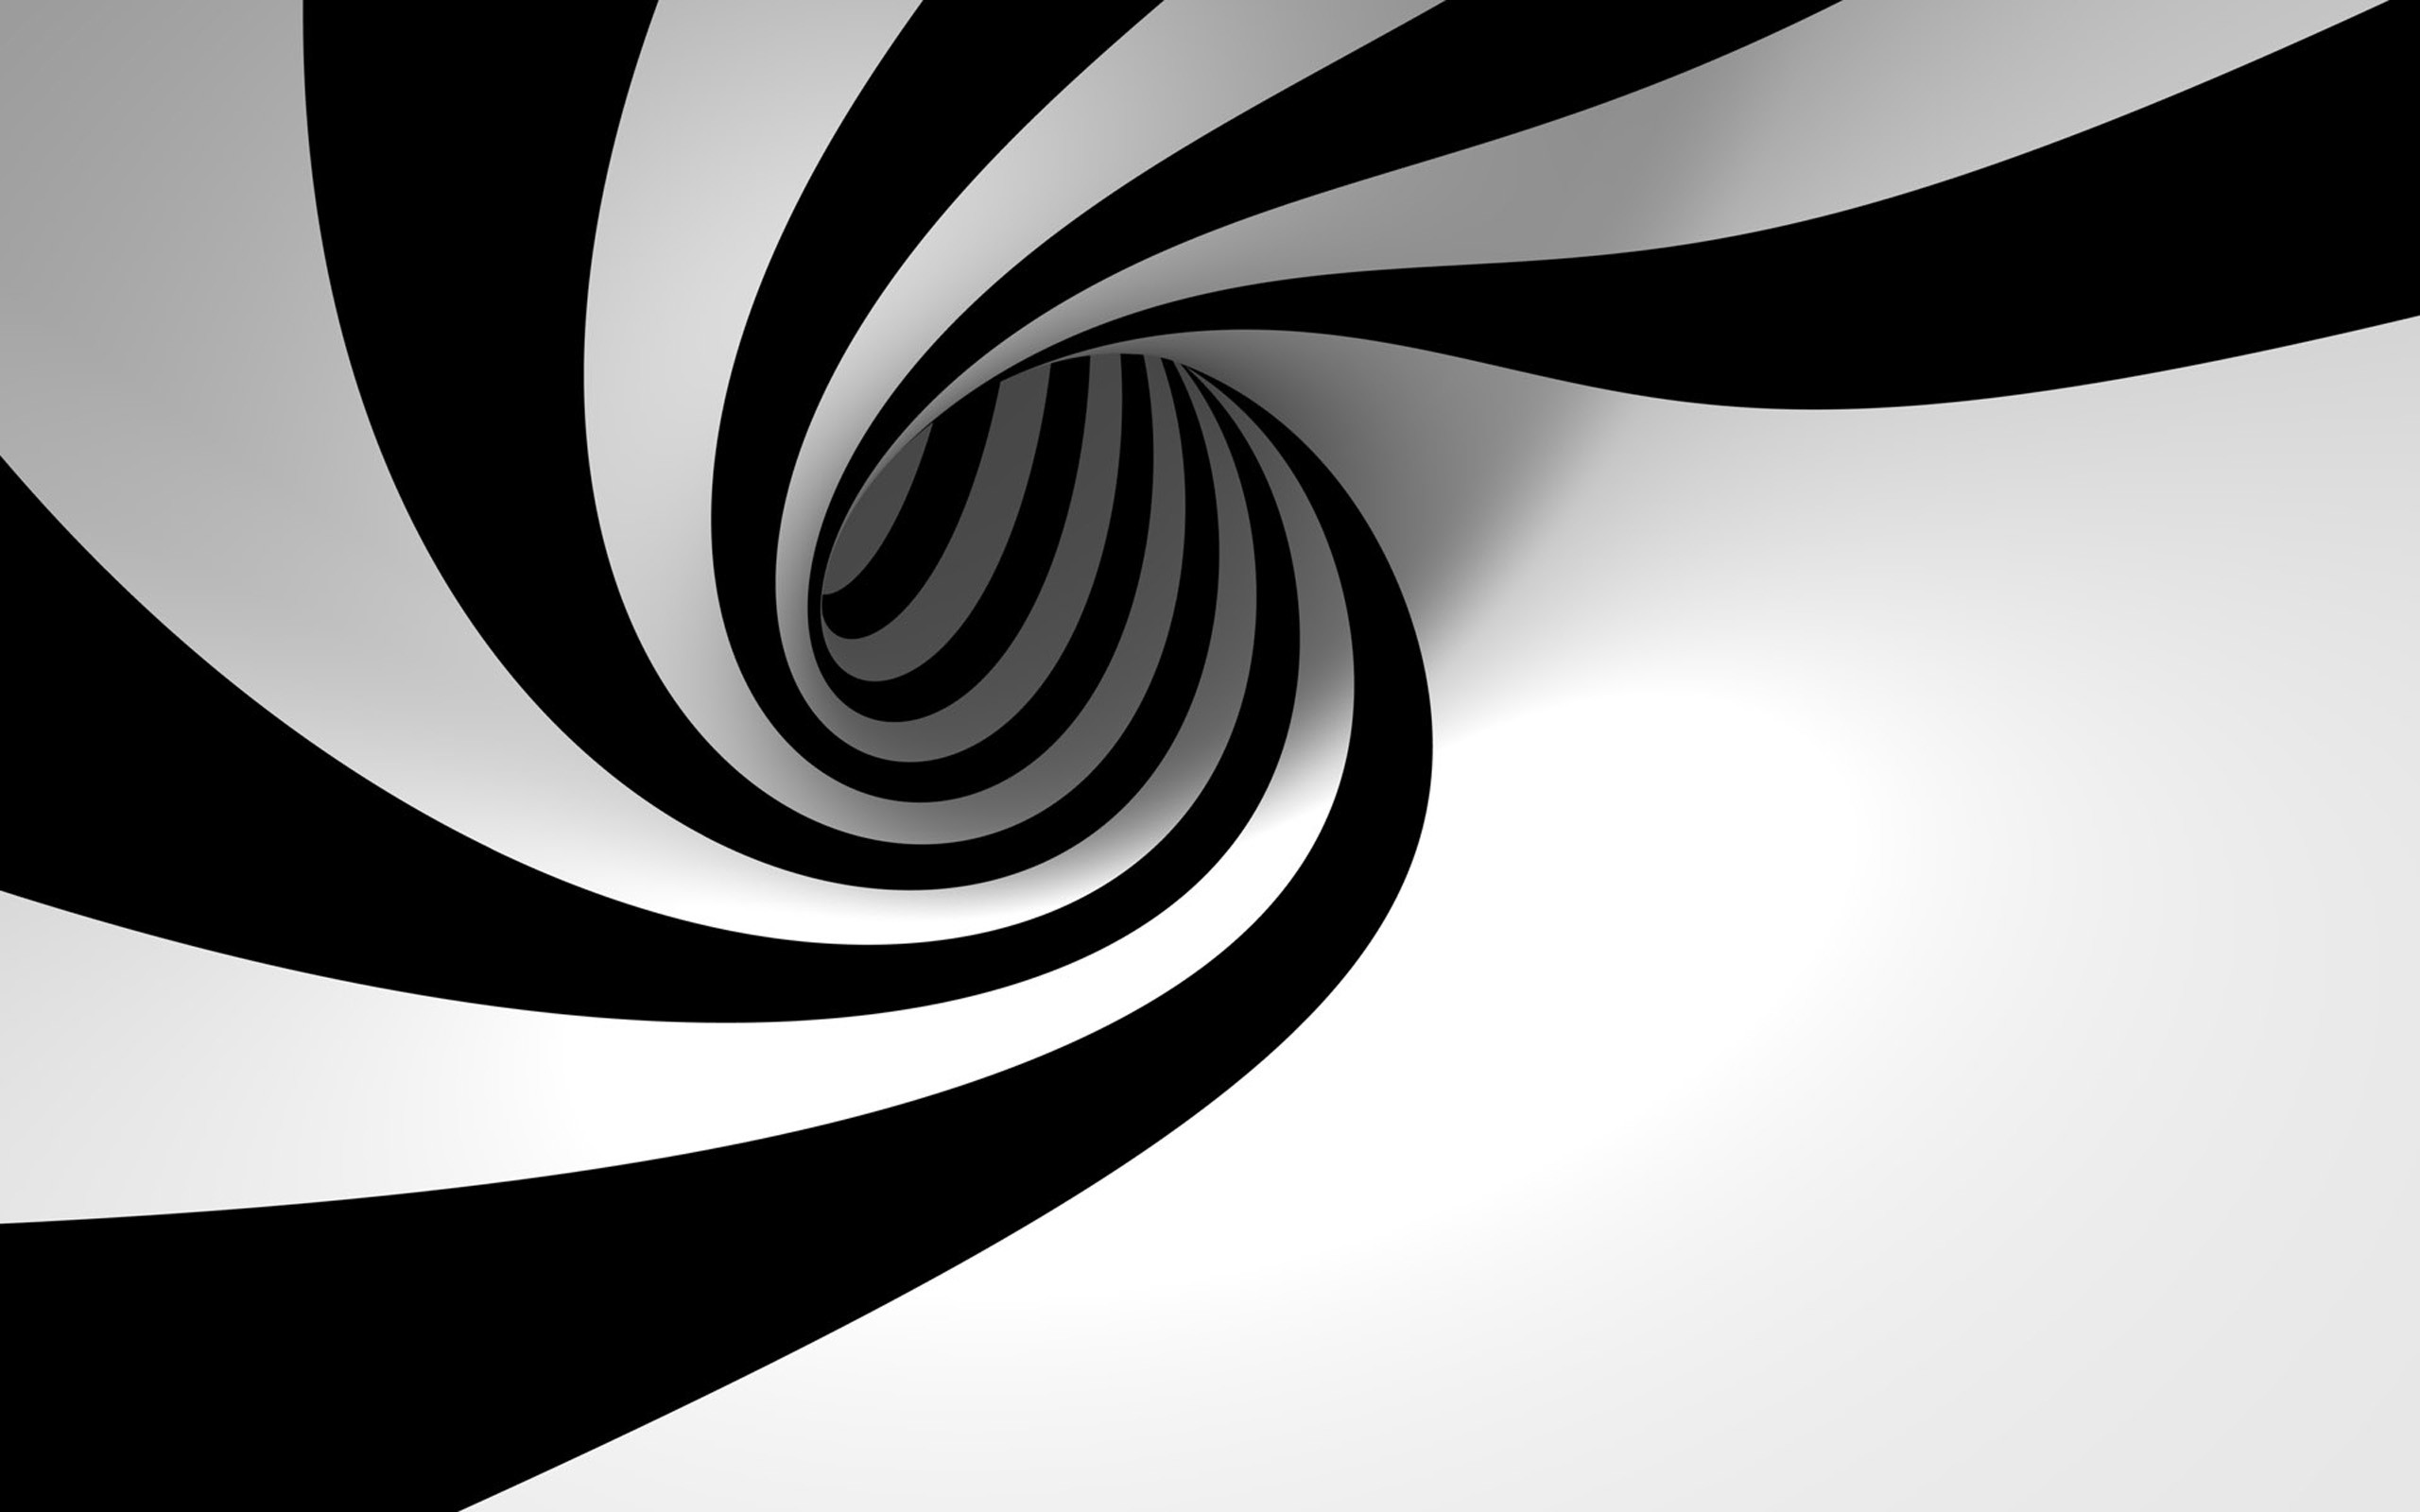 Download for free an abstract black and white wallpaper / background .